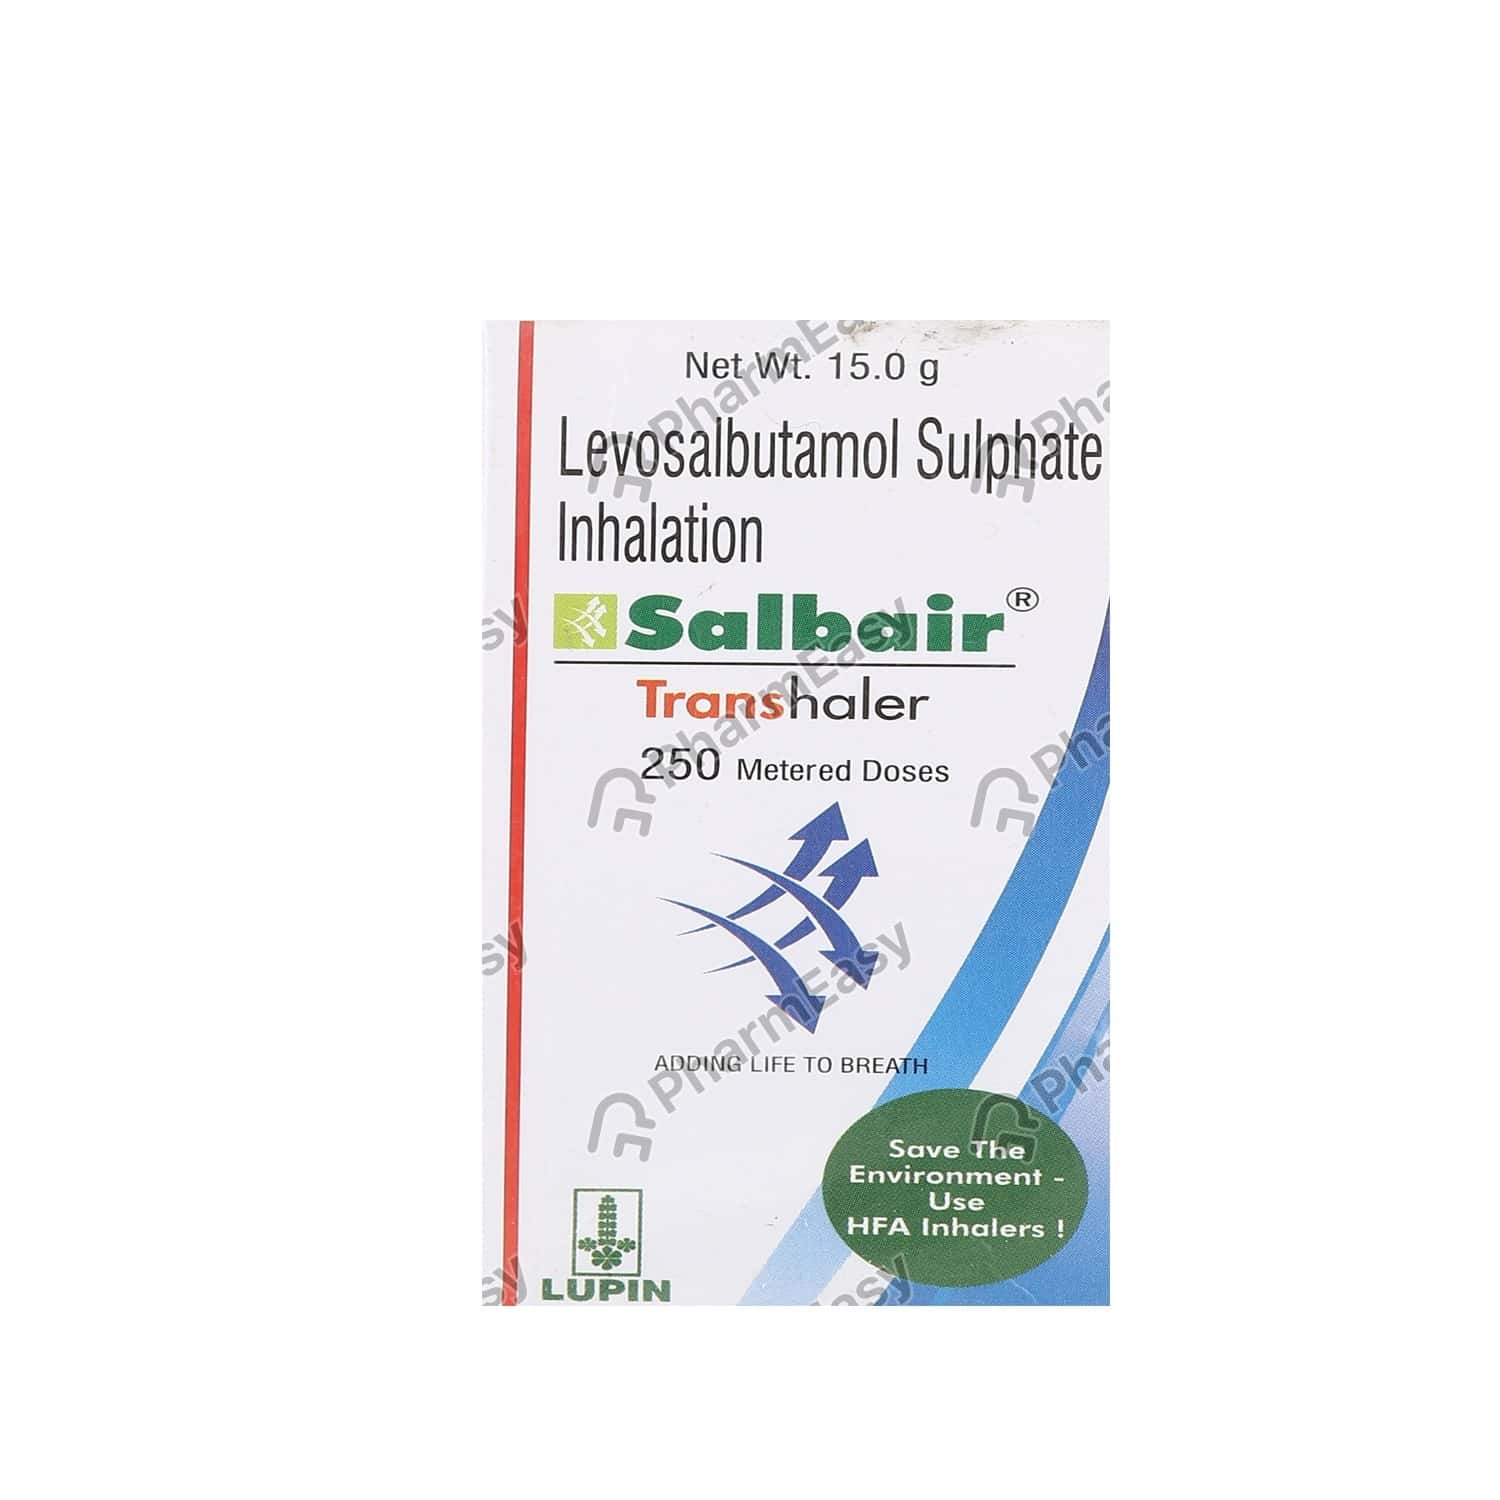 Salbair 50mcg Bottle Of 250md Transhaler